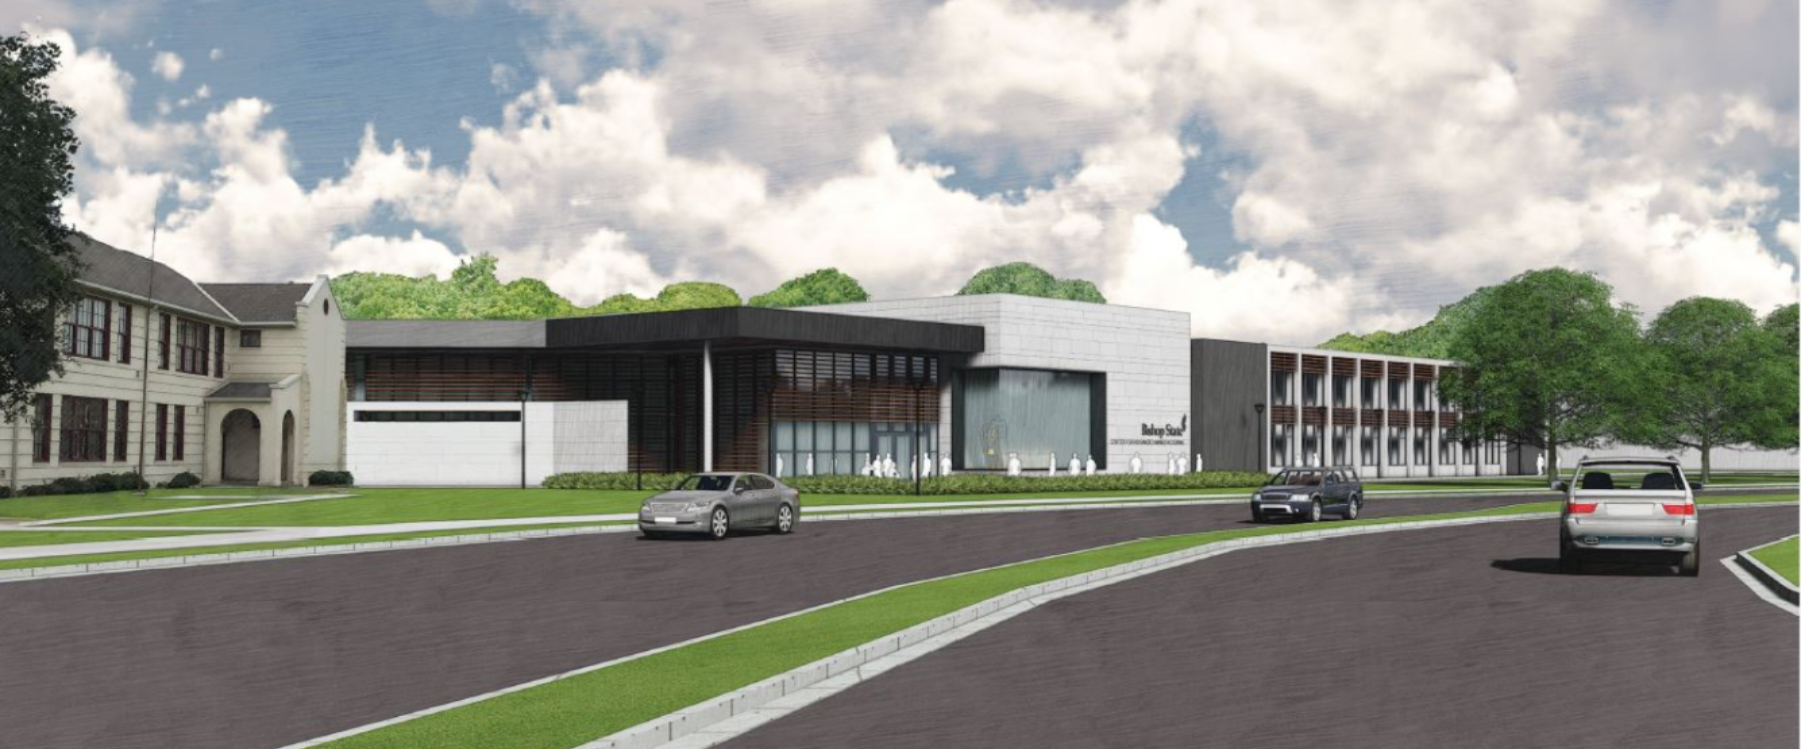 Rendering of new college facility, building with cares driving in street